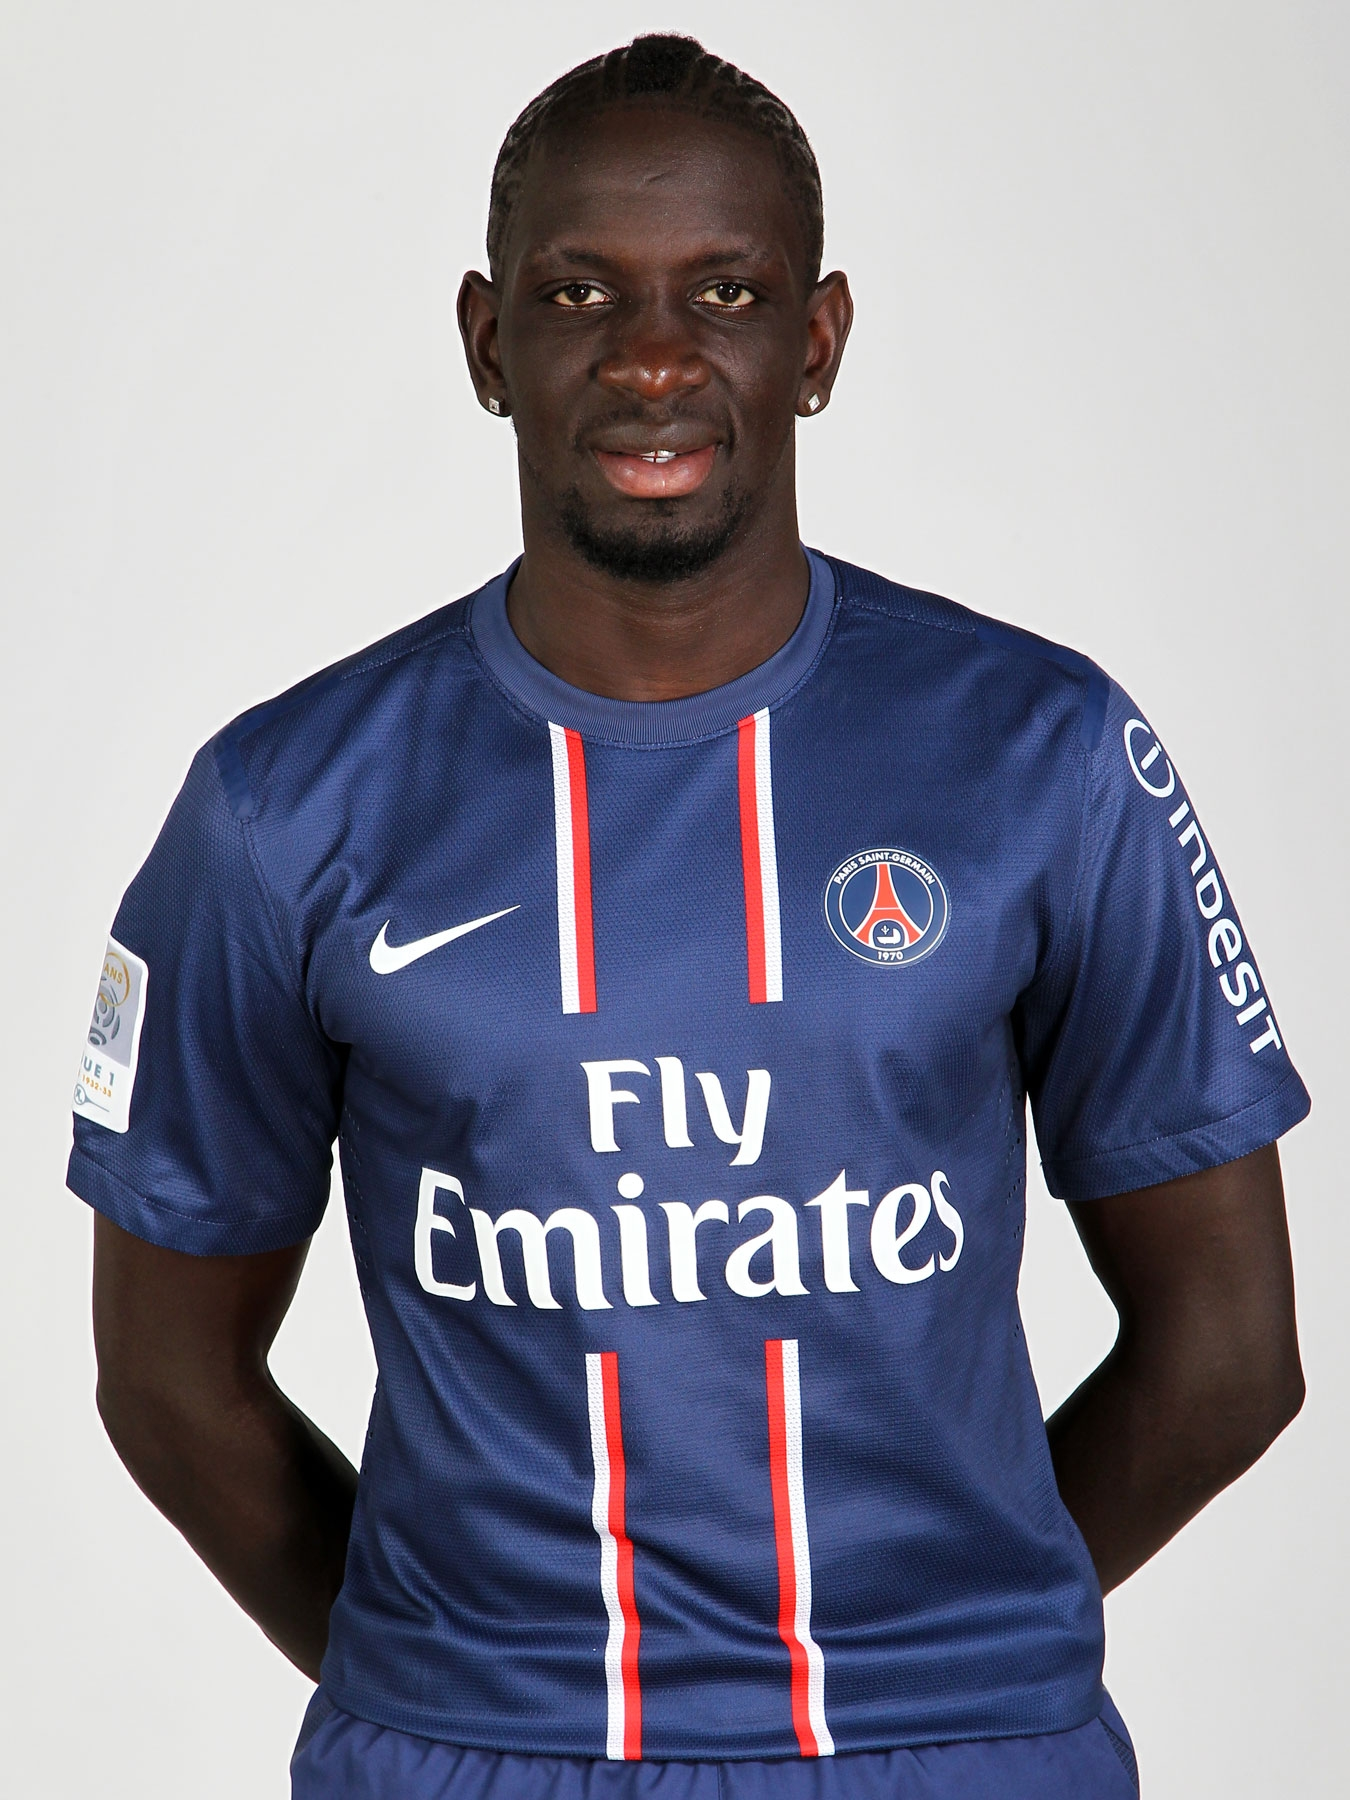 Mamadou Sakho Profile Picture